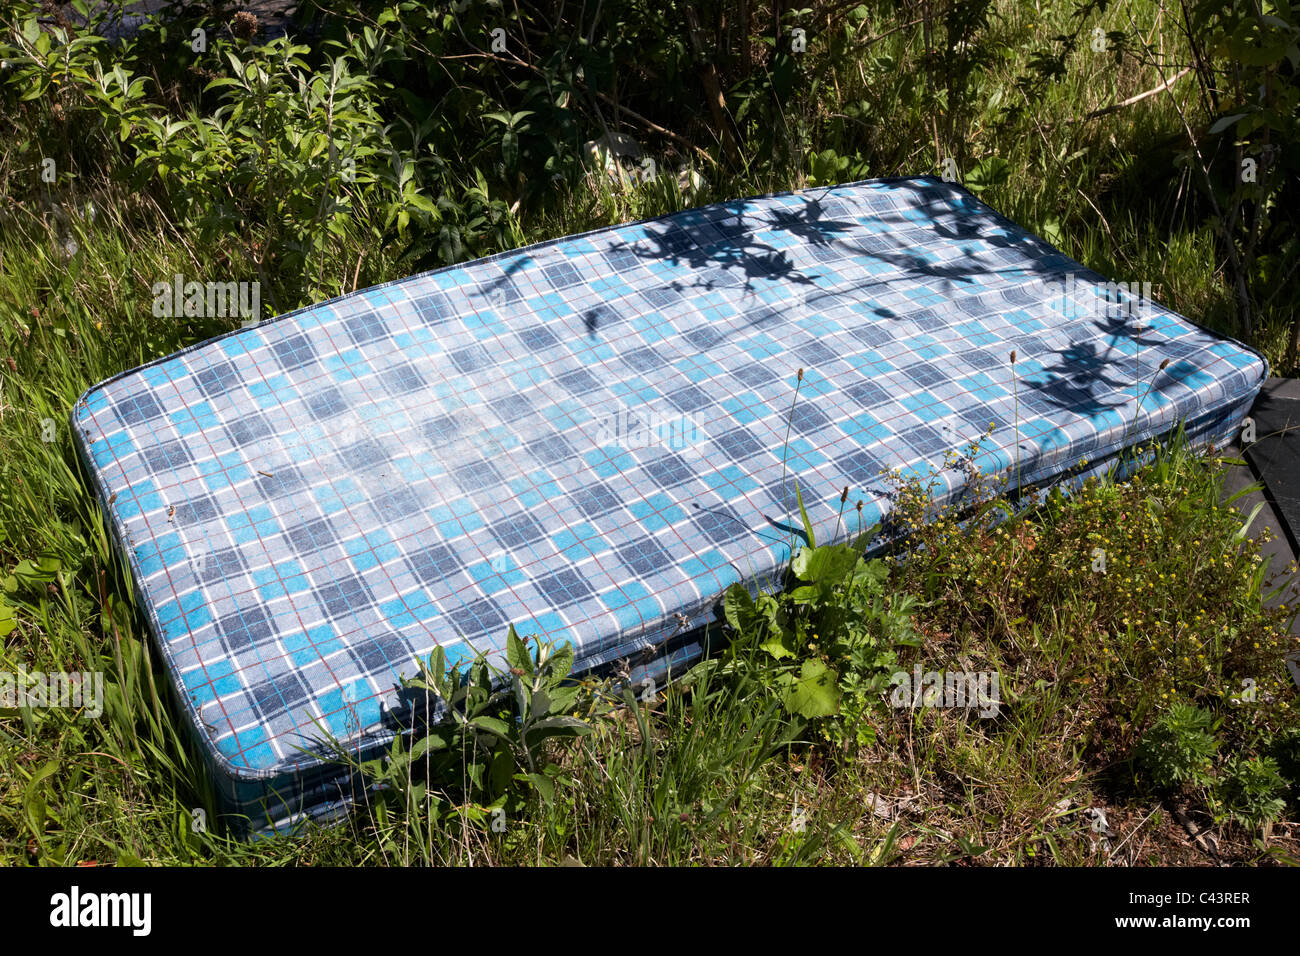 old mattress thrown away discarded by the roadside dumped - Stock Image